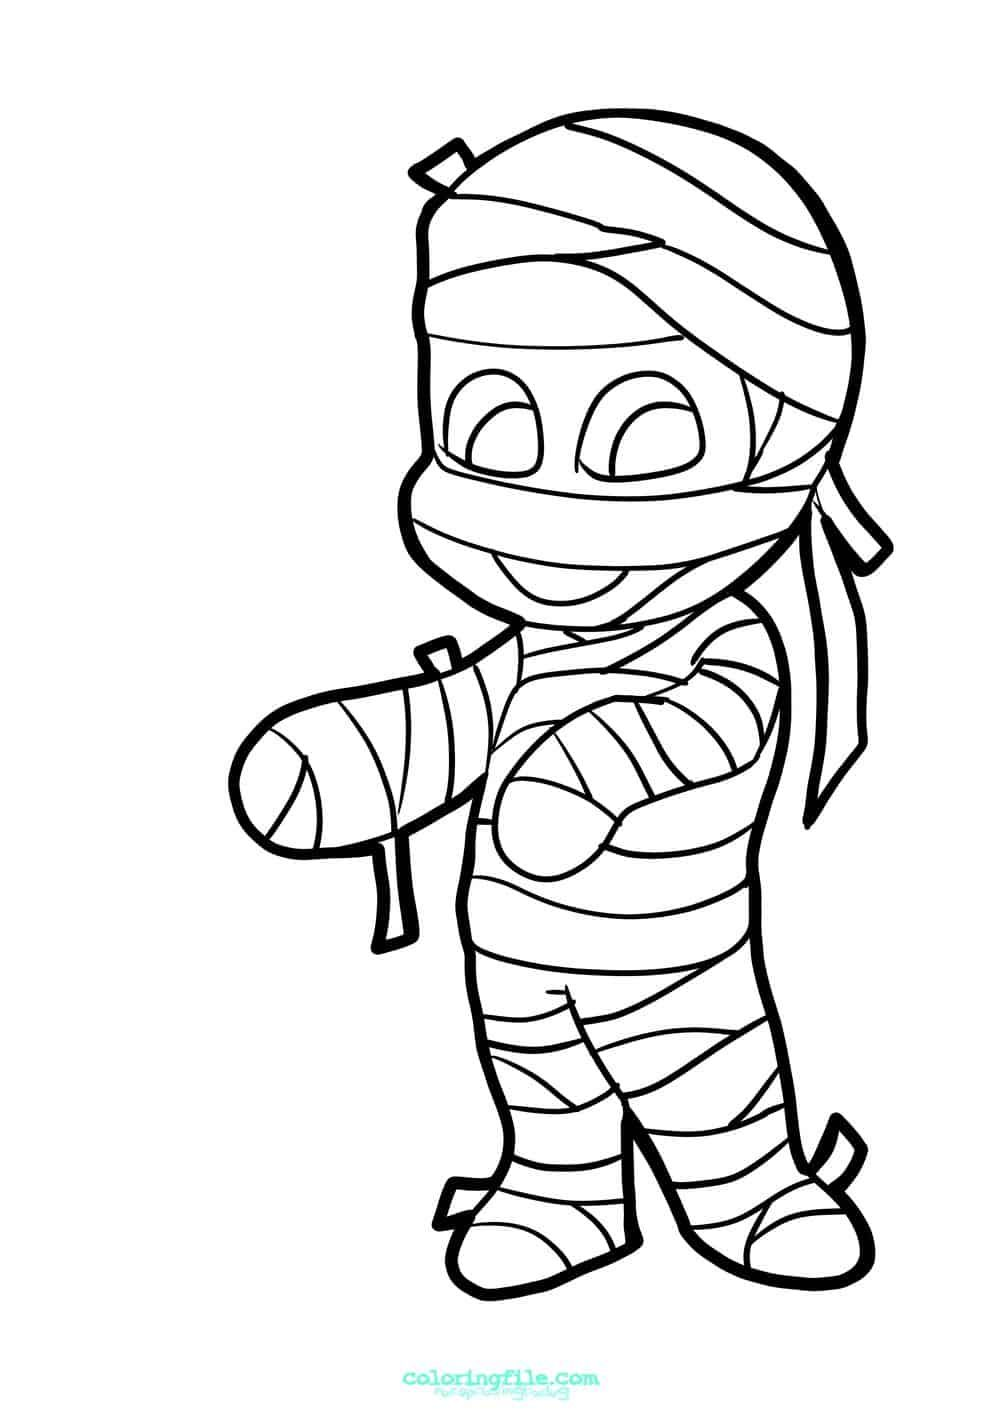 Halloween Mummy Coloring Pages Halloween Coloring Pages Halloween Coloring Halloween Coloring Pages Printable